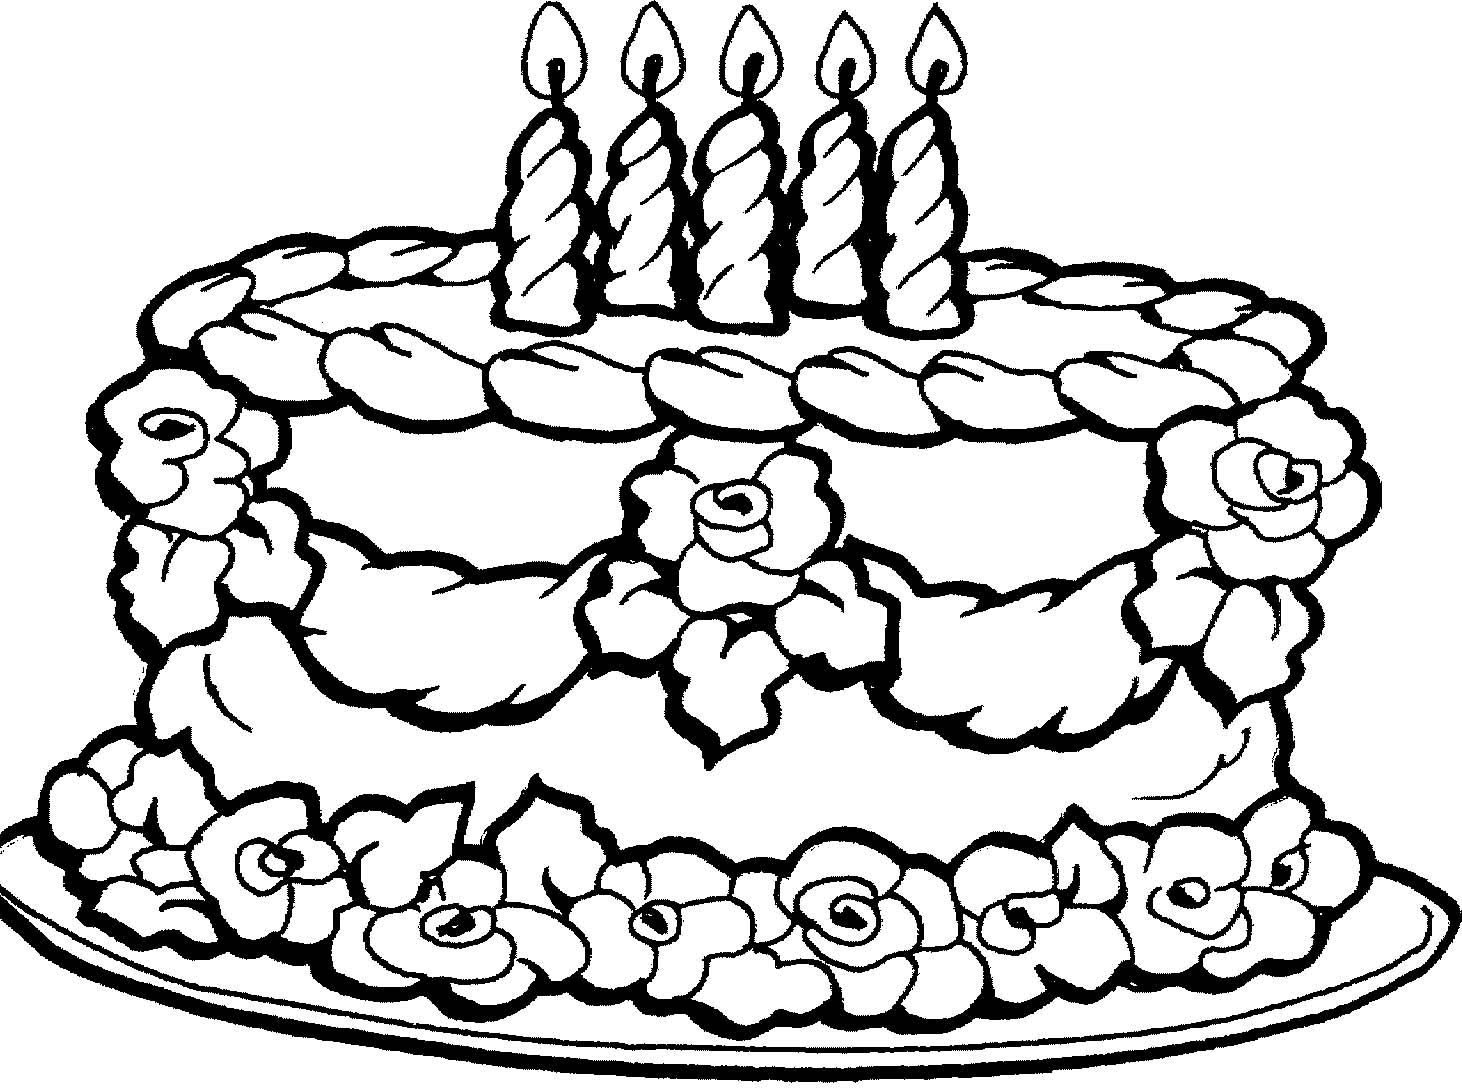 blank birthday cake coloring page ; 4e3f9ae800dc57dae9501754479d7f55